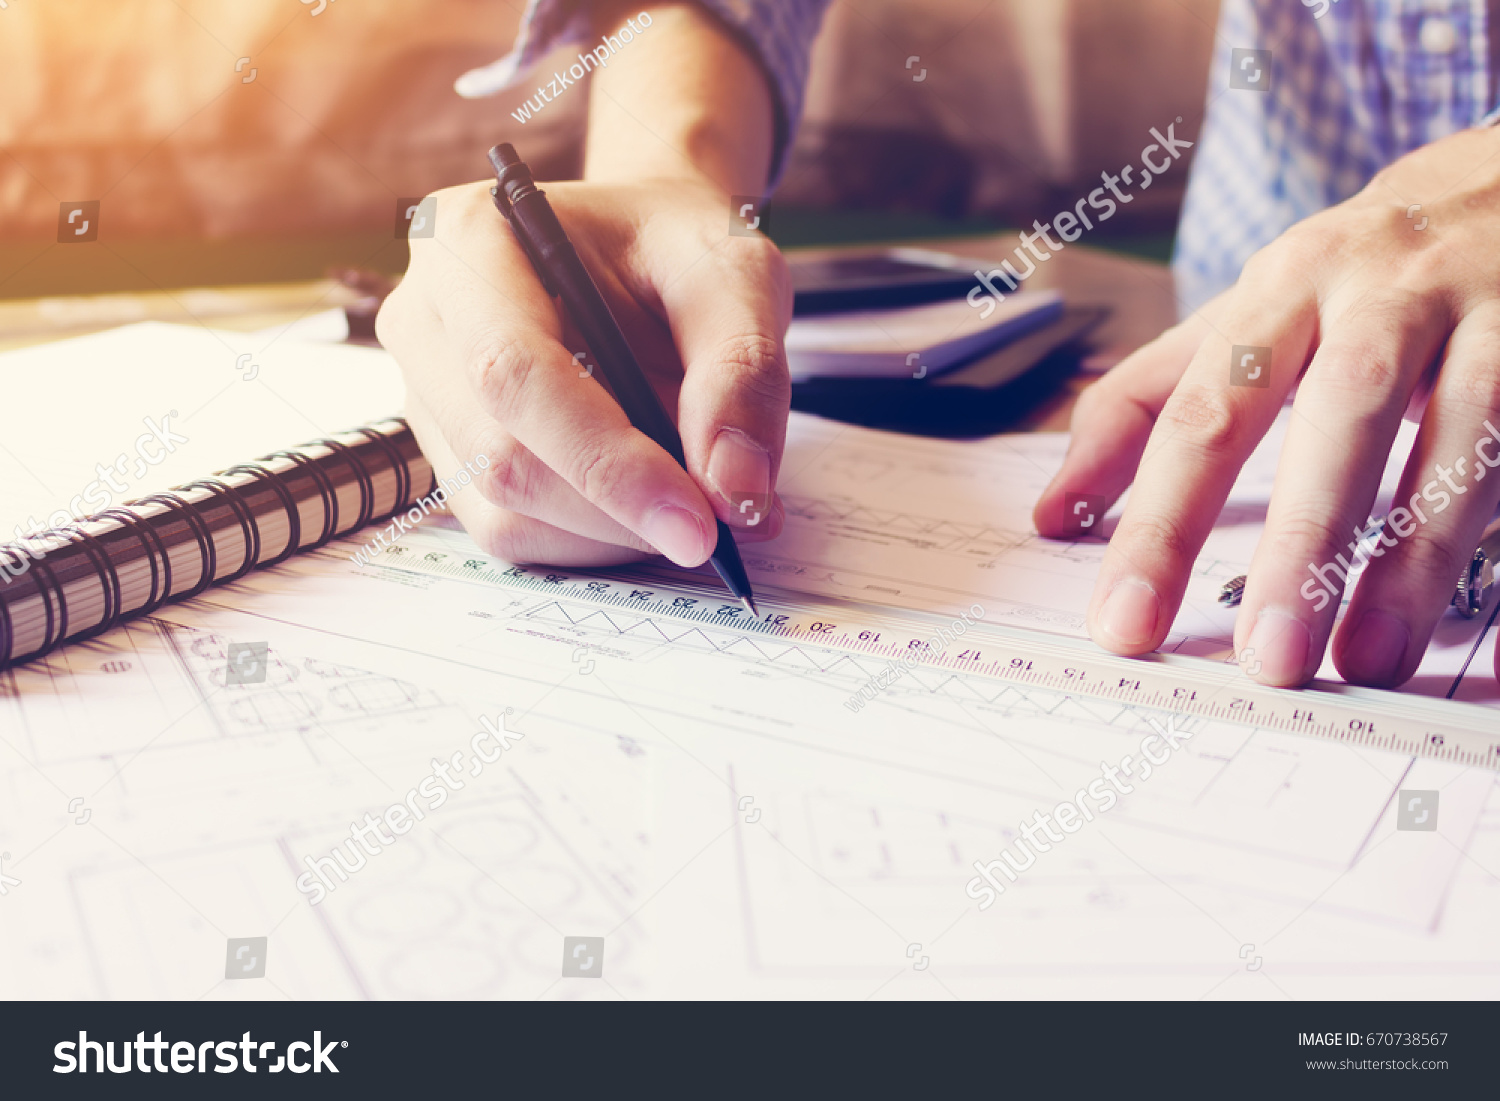 Asian man hand drawing on blueprint stock photo 670738567 shutterstock asian man hand drawing on blueprint paper at home office malvernweather Choice Image